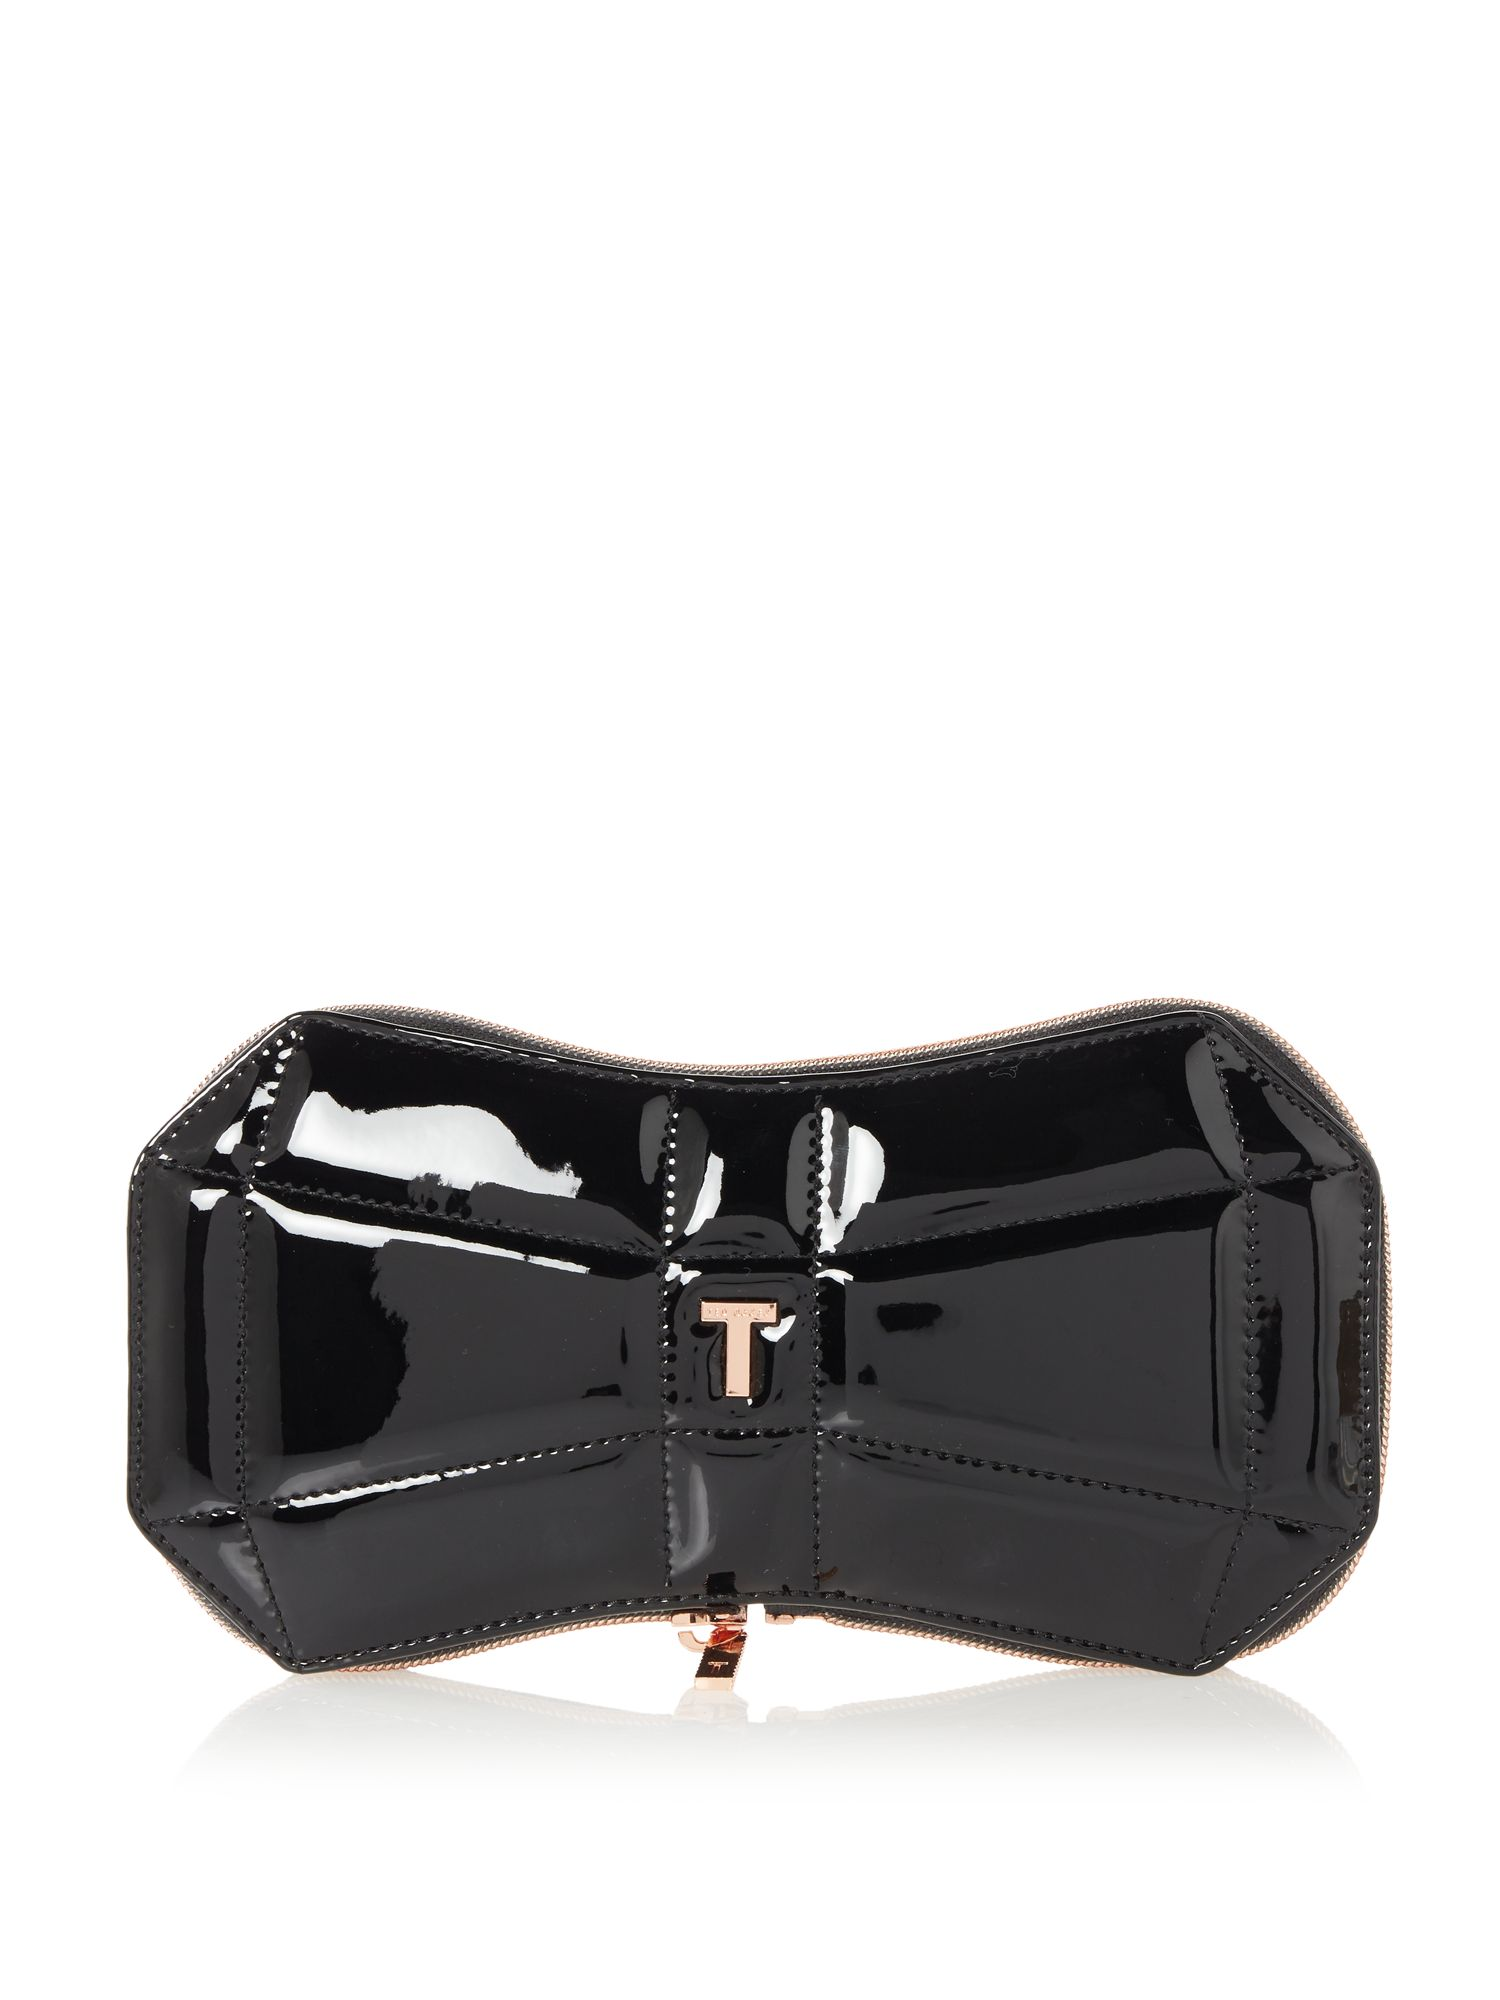 Ted Baker Arminda foldaway shopper bag Black